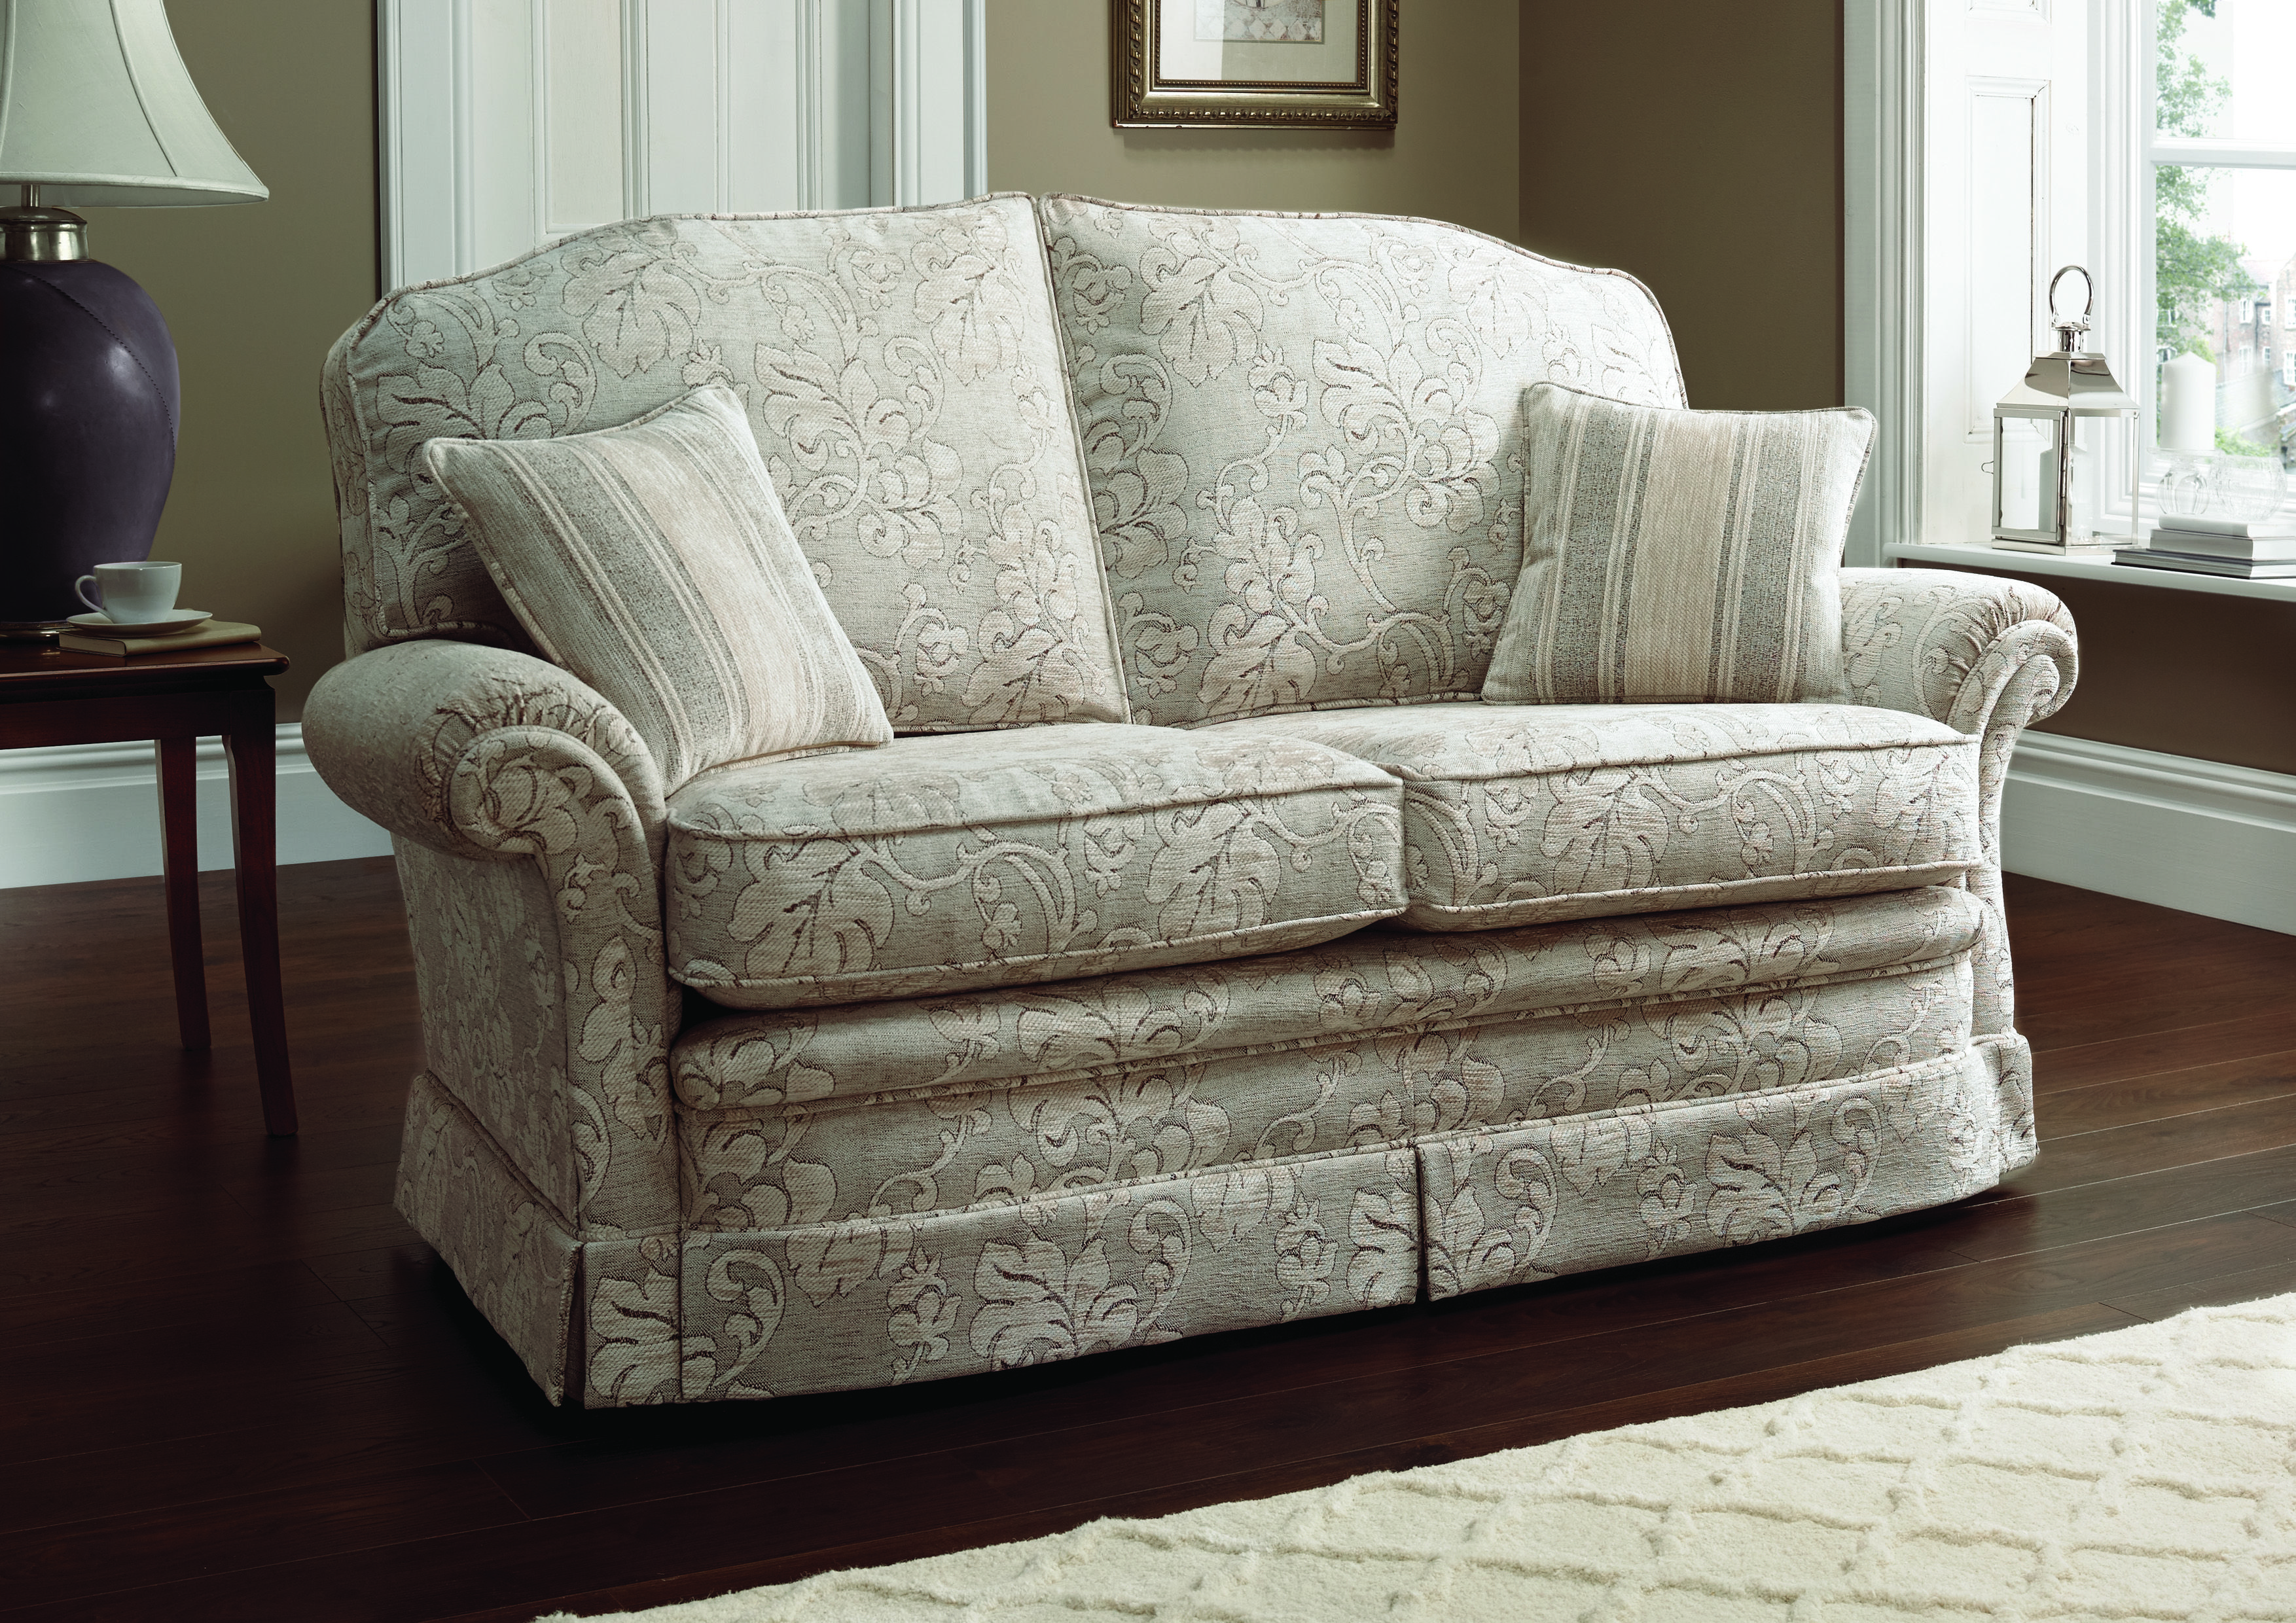 The Clic Blenheim Sofa Superbly Comfortable Beautiful And Durable English Furniture At Its